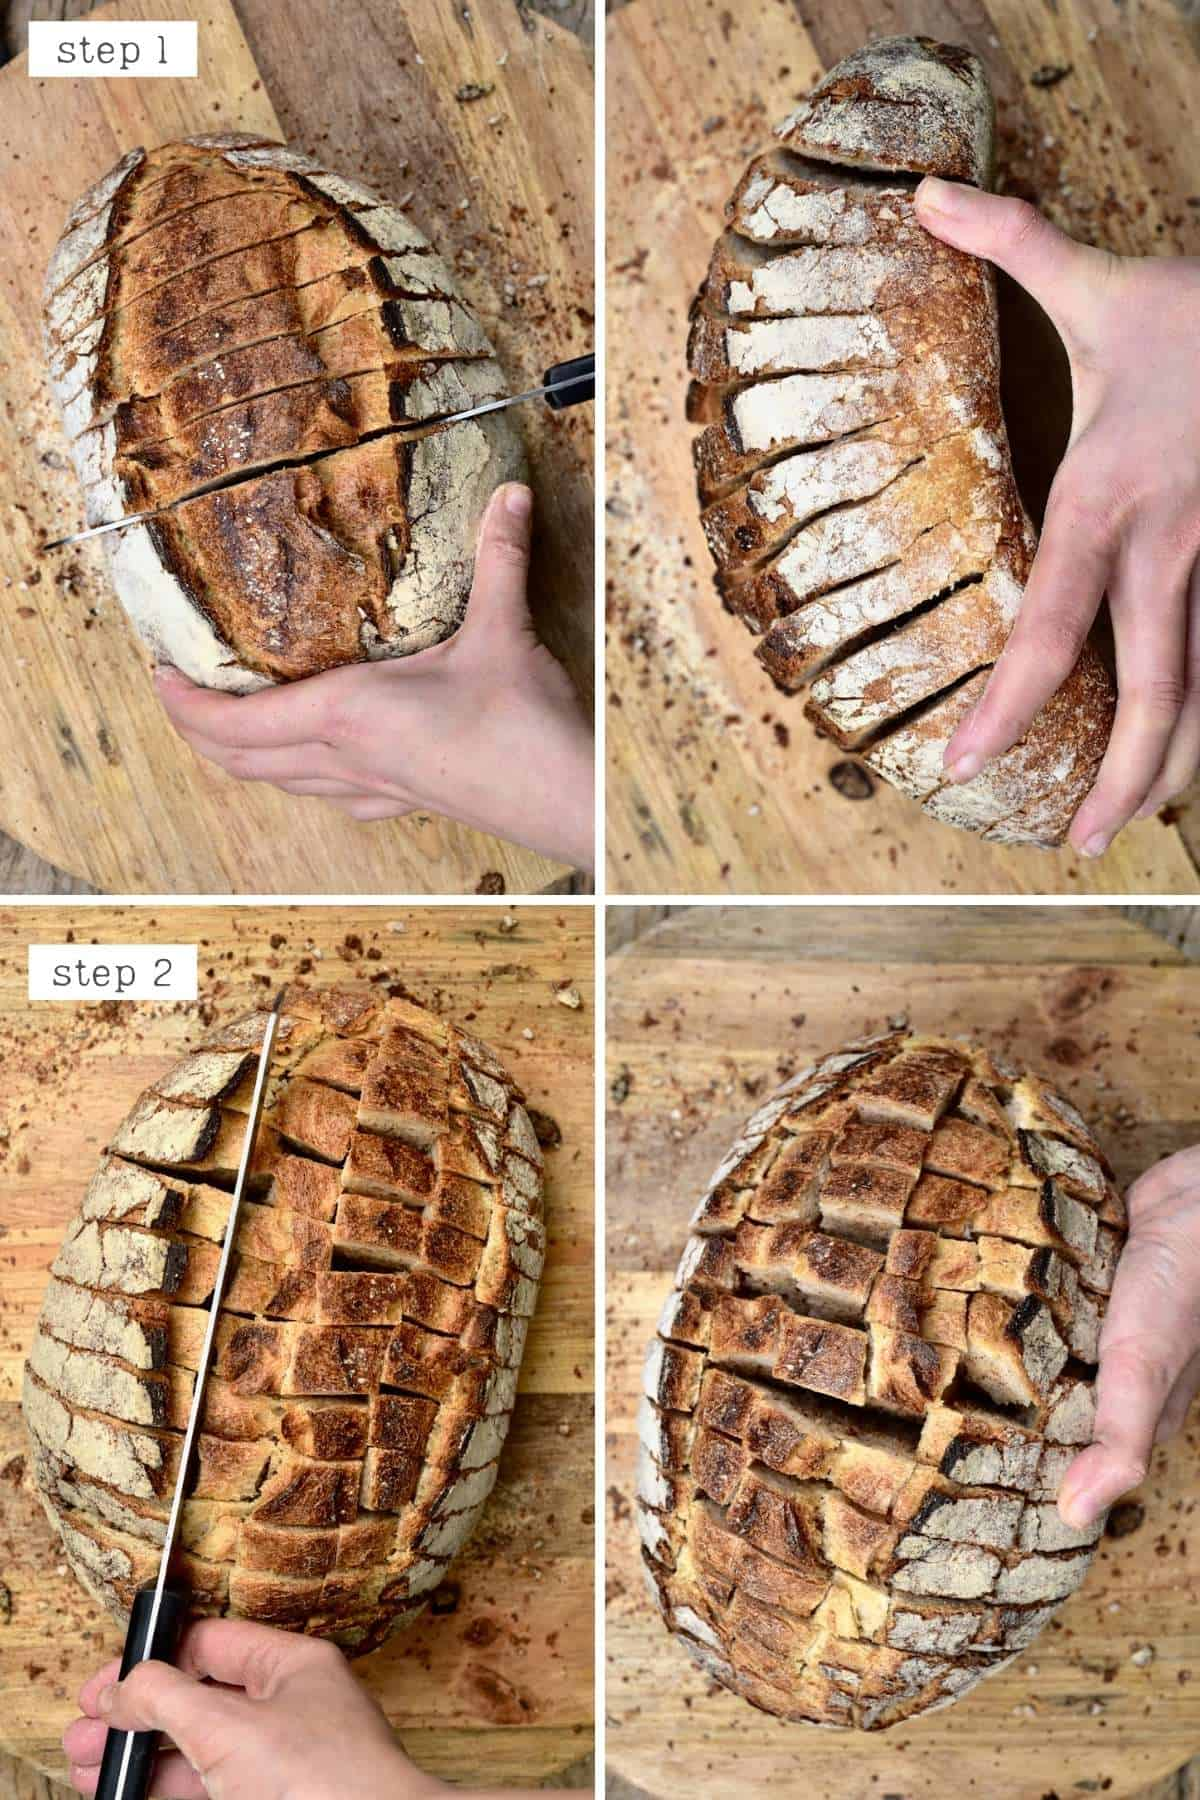 Steps for cutting pull-apart bread